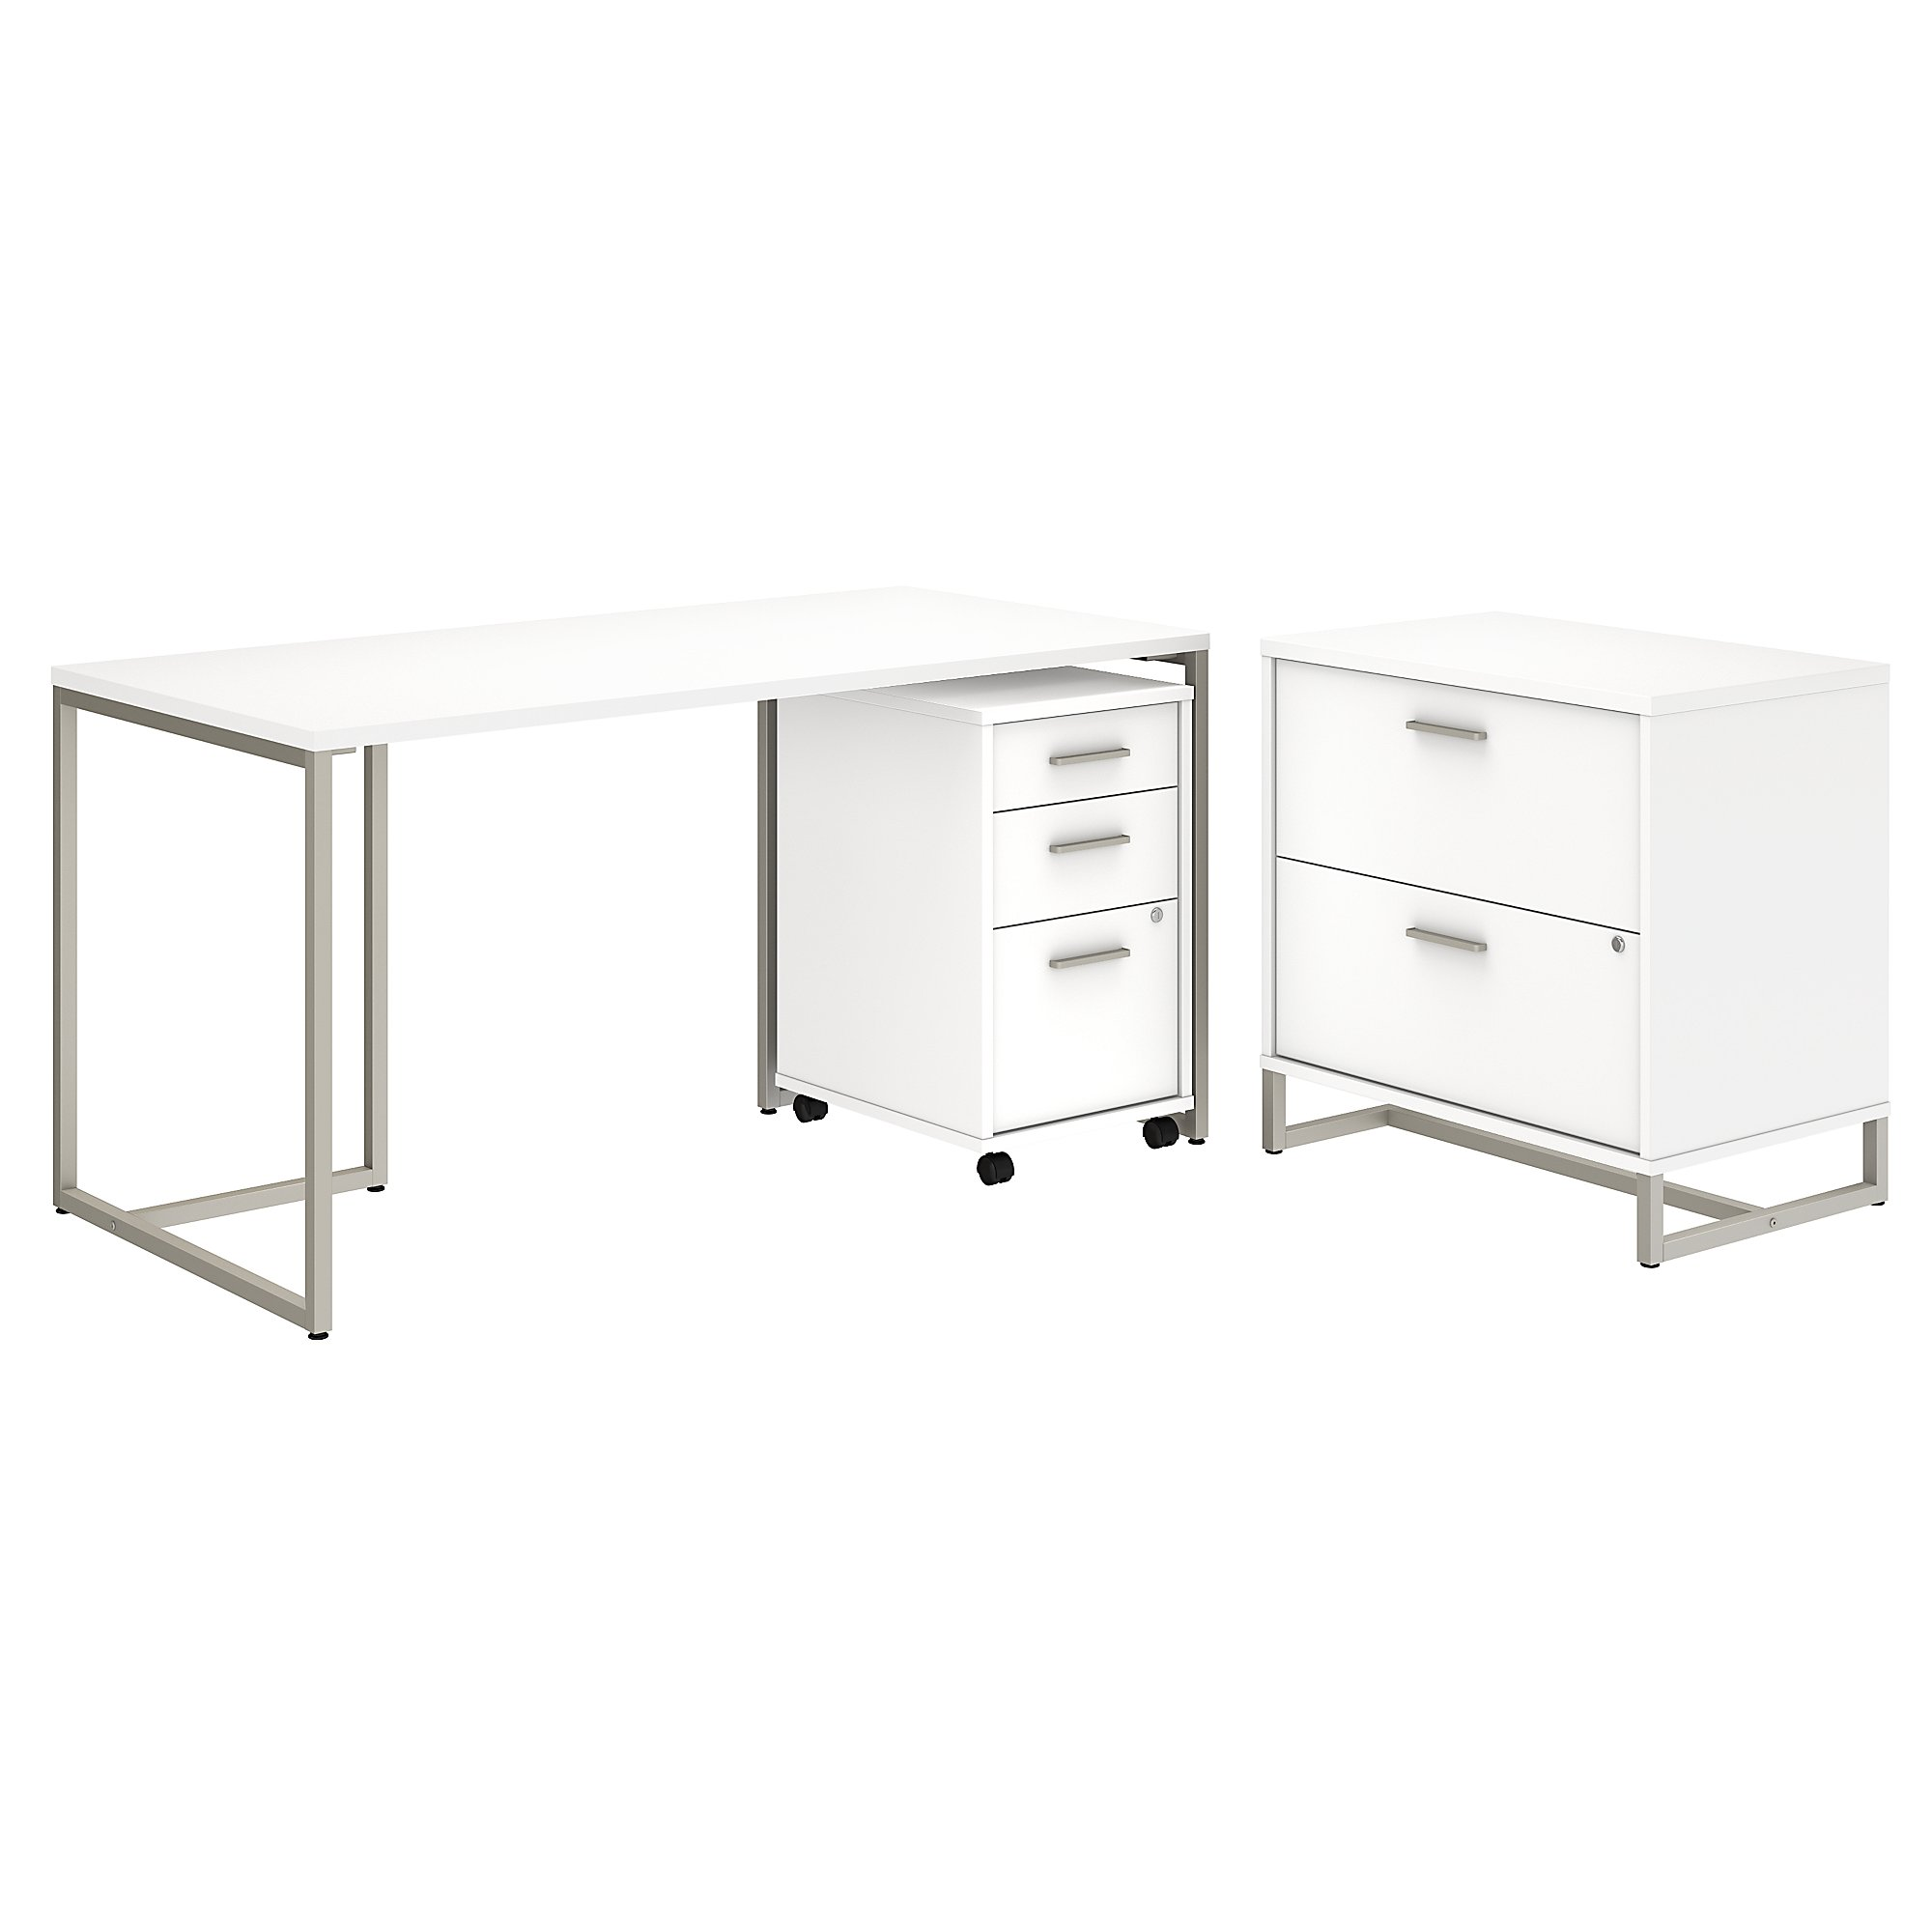 method writing desk with file cabinets in white